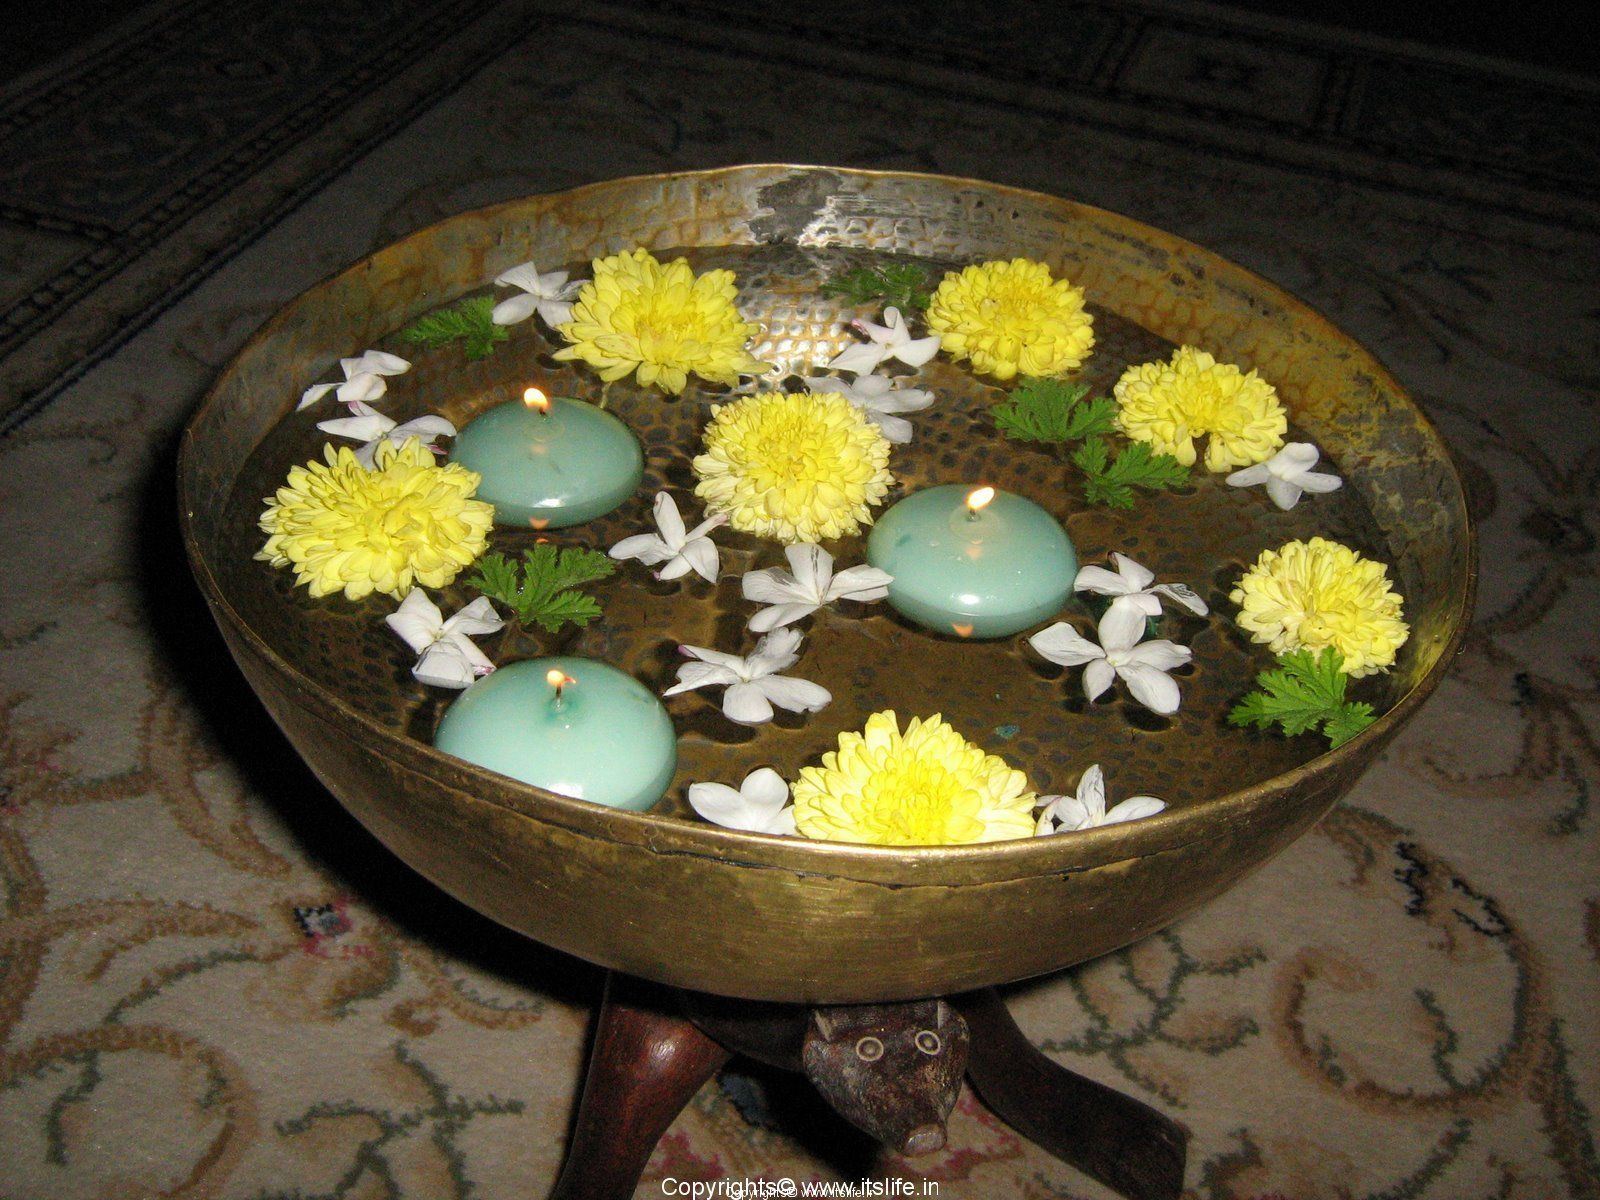 Water Bowl Decoration Floating Candles Decorating Ideas Floating Candles In Diwali